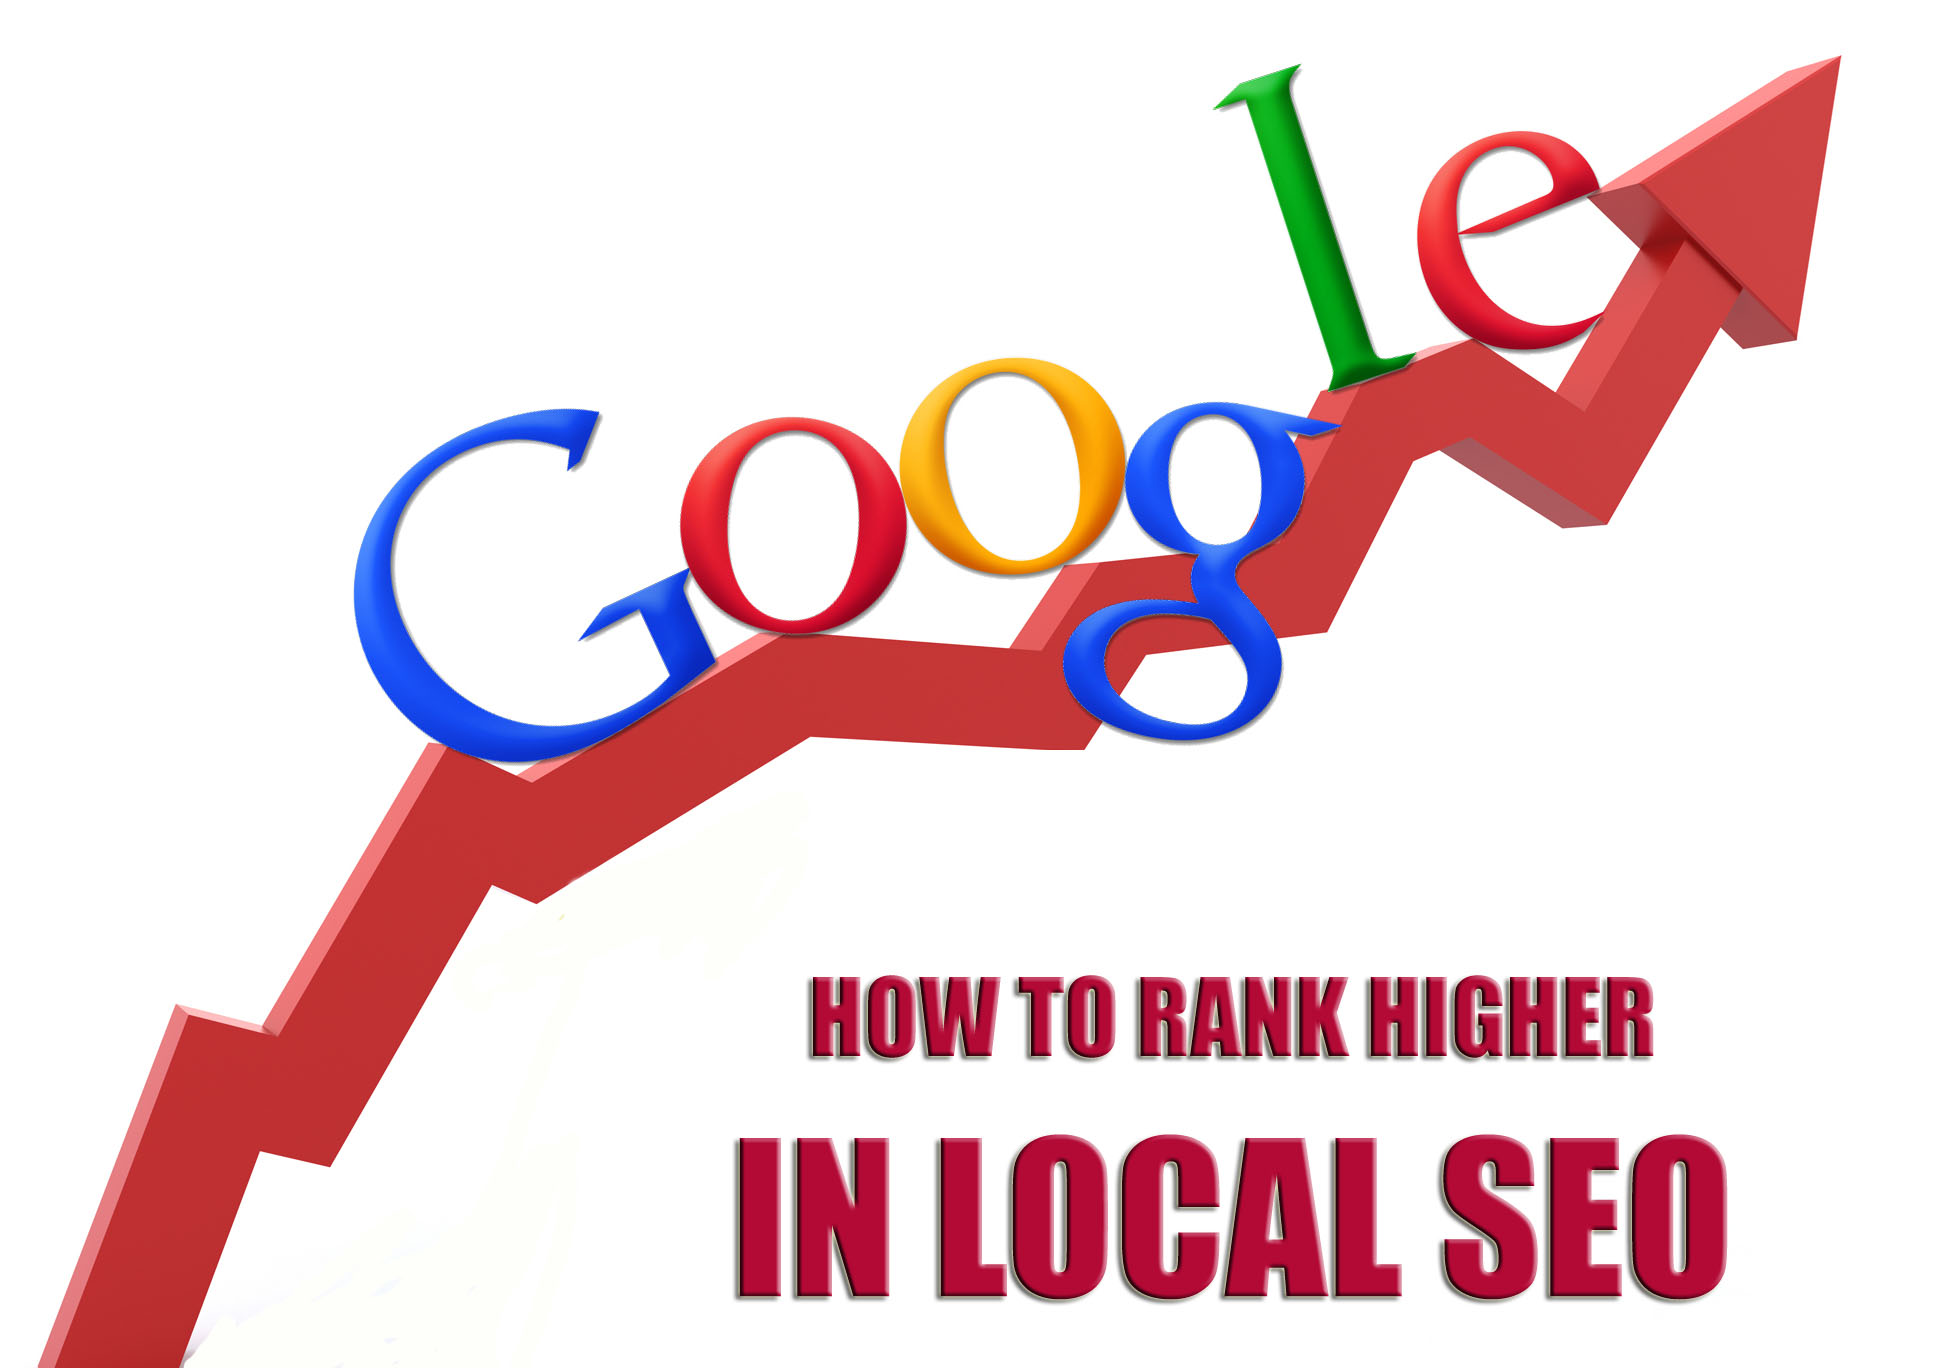 How to Rank Higher in Local SEO